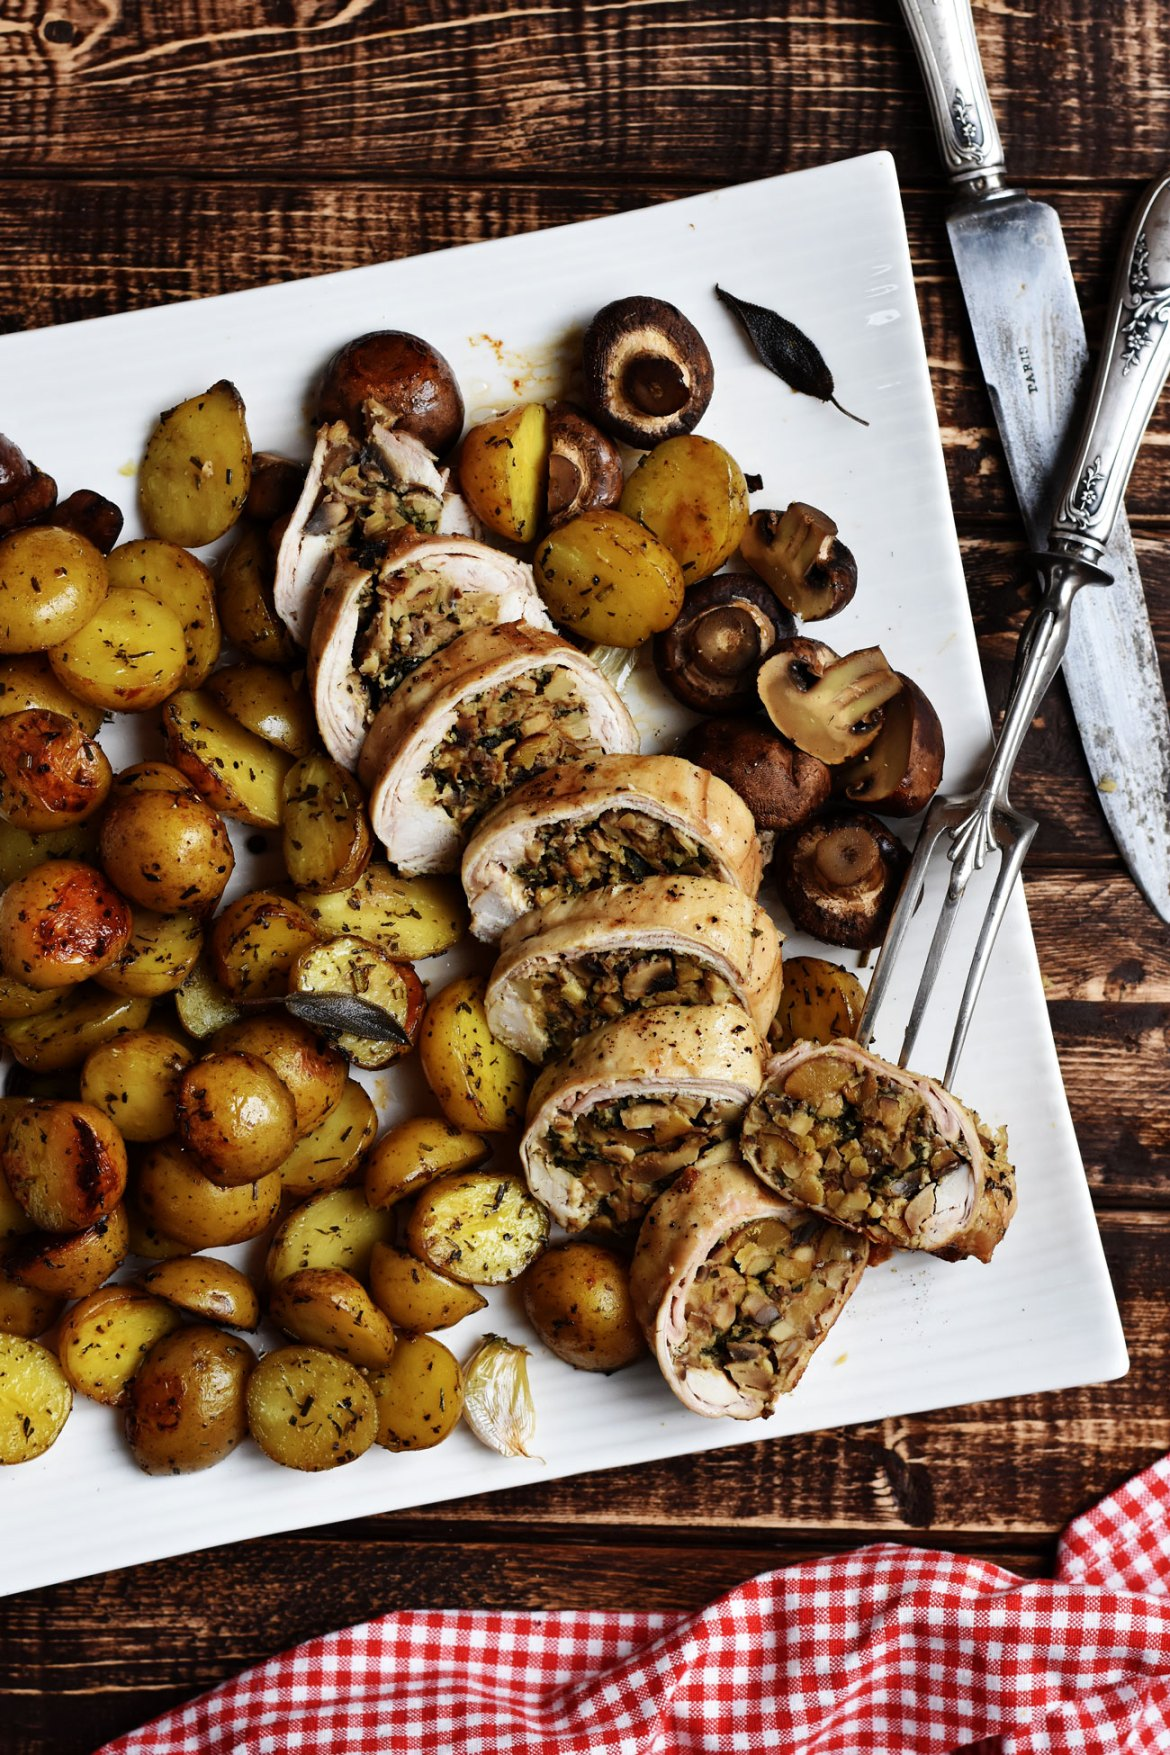 Stuffed Rabbit Saddle with Mushrooms and Chestnuts